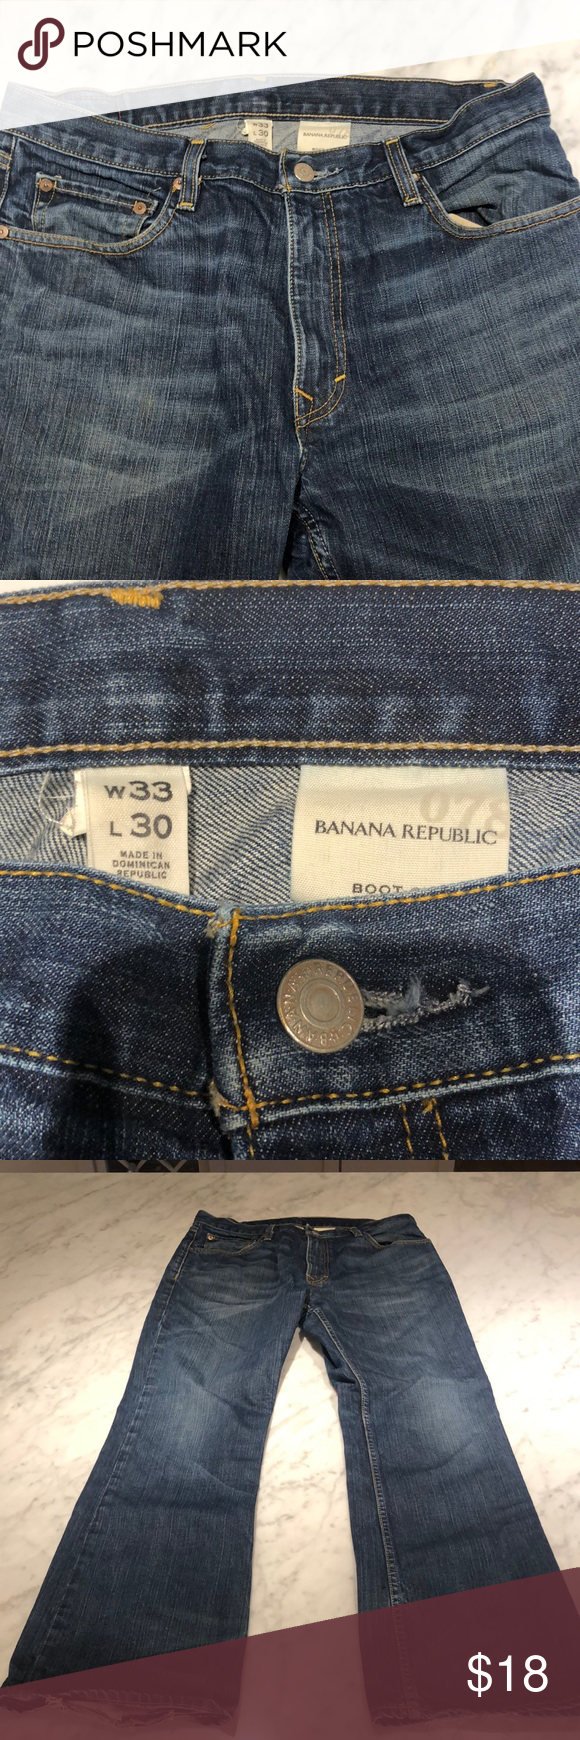 e36858ba7124 Banana Republic Boot Cut Jeans 33x30 Men's Banana Republic Boot Cut Jeans,  dark wash Zip fly. Pant cuffs are distressed. 33x30 Gently used condition  Banana ...